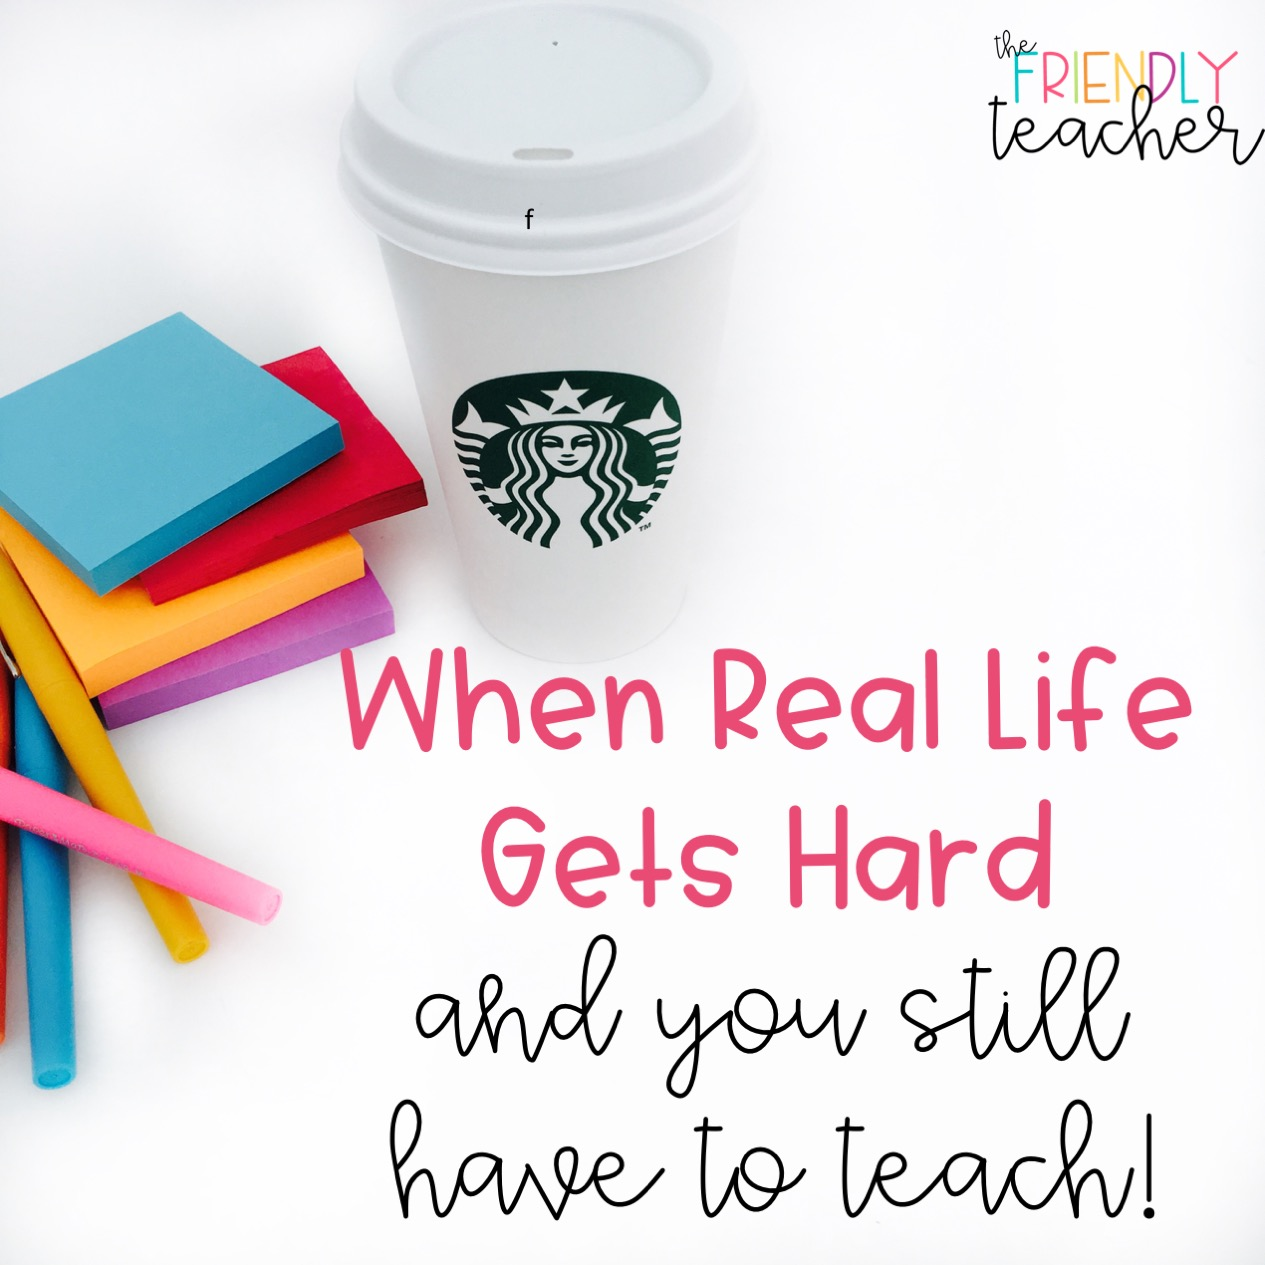 Sometimes life can be hard and you still have to teach. Here are my top tips for that!